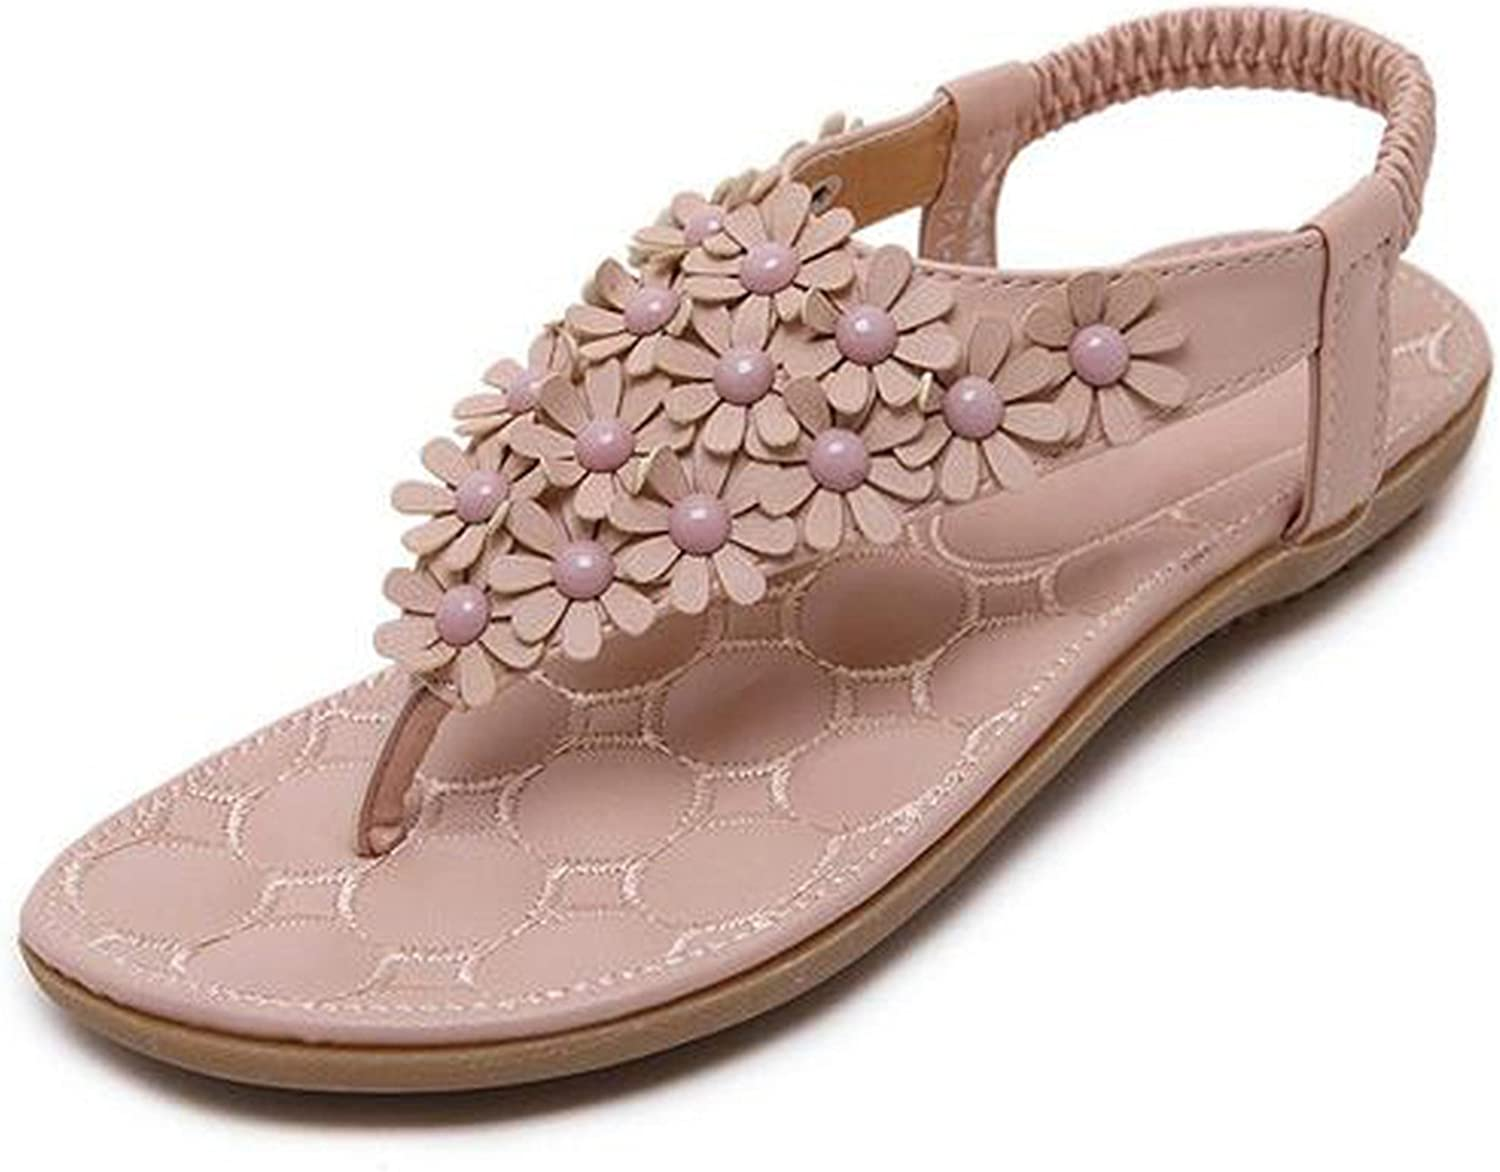 Nerefy Women Soft Casual Sandals Flowers Decoration with Flats Comfortable Wearing Women Beach shoes